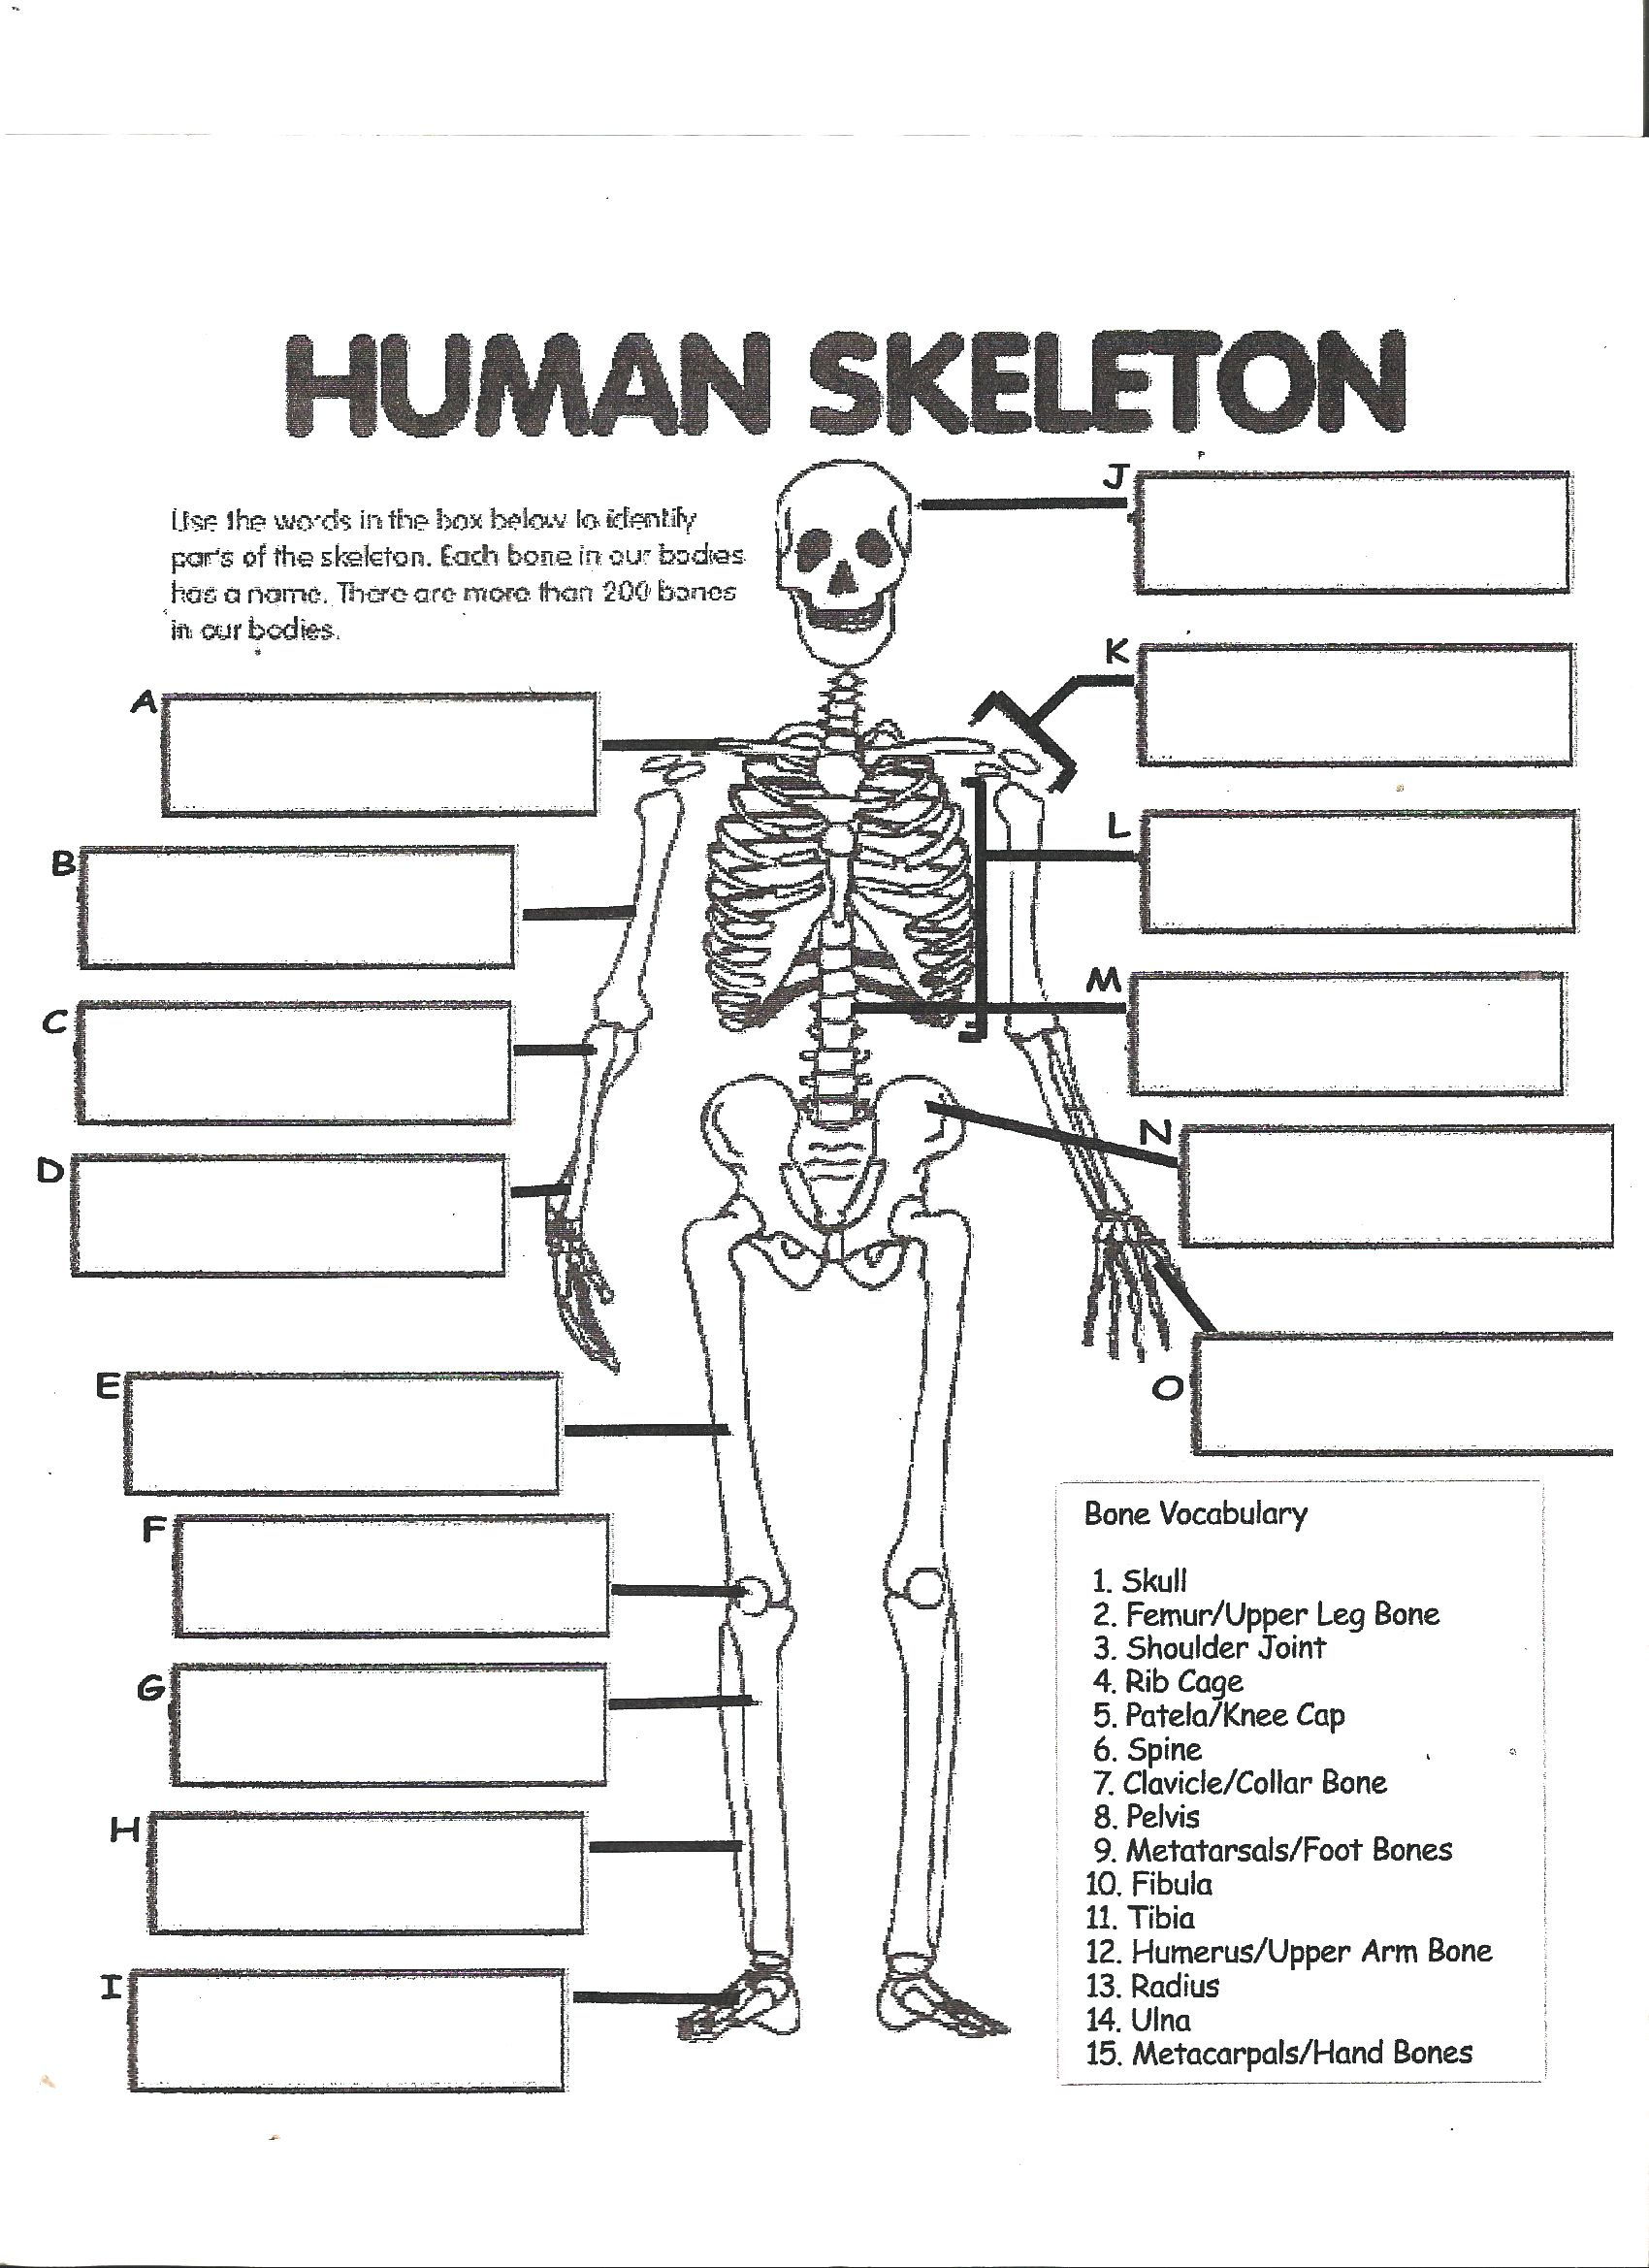 Digestive System Labeling Worksheet Answers Human skeleton worksheet    Skeletal system worksheet [ 2338 x 1700 Pixel ]